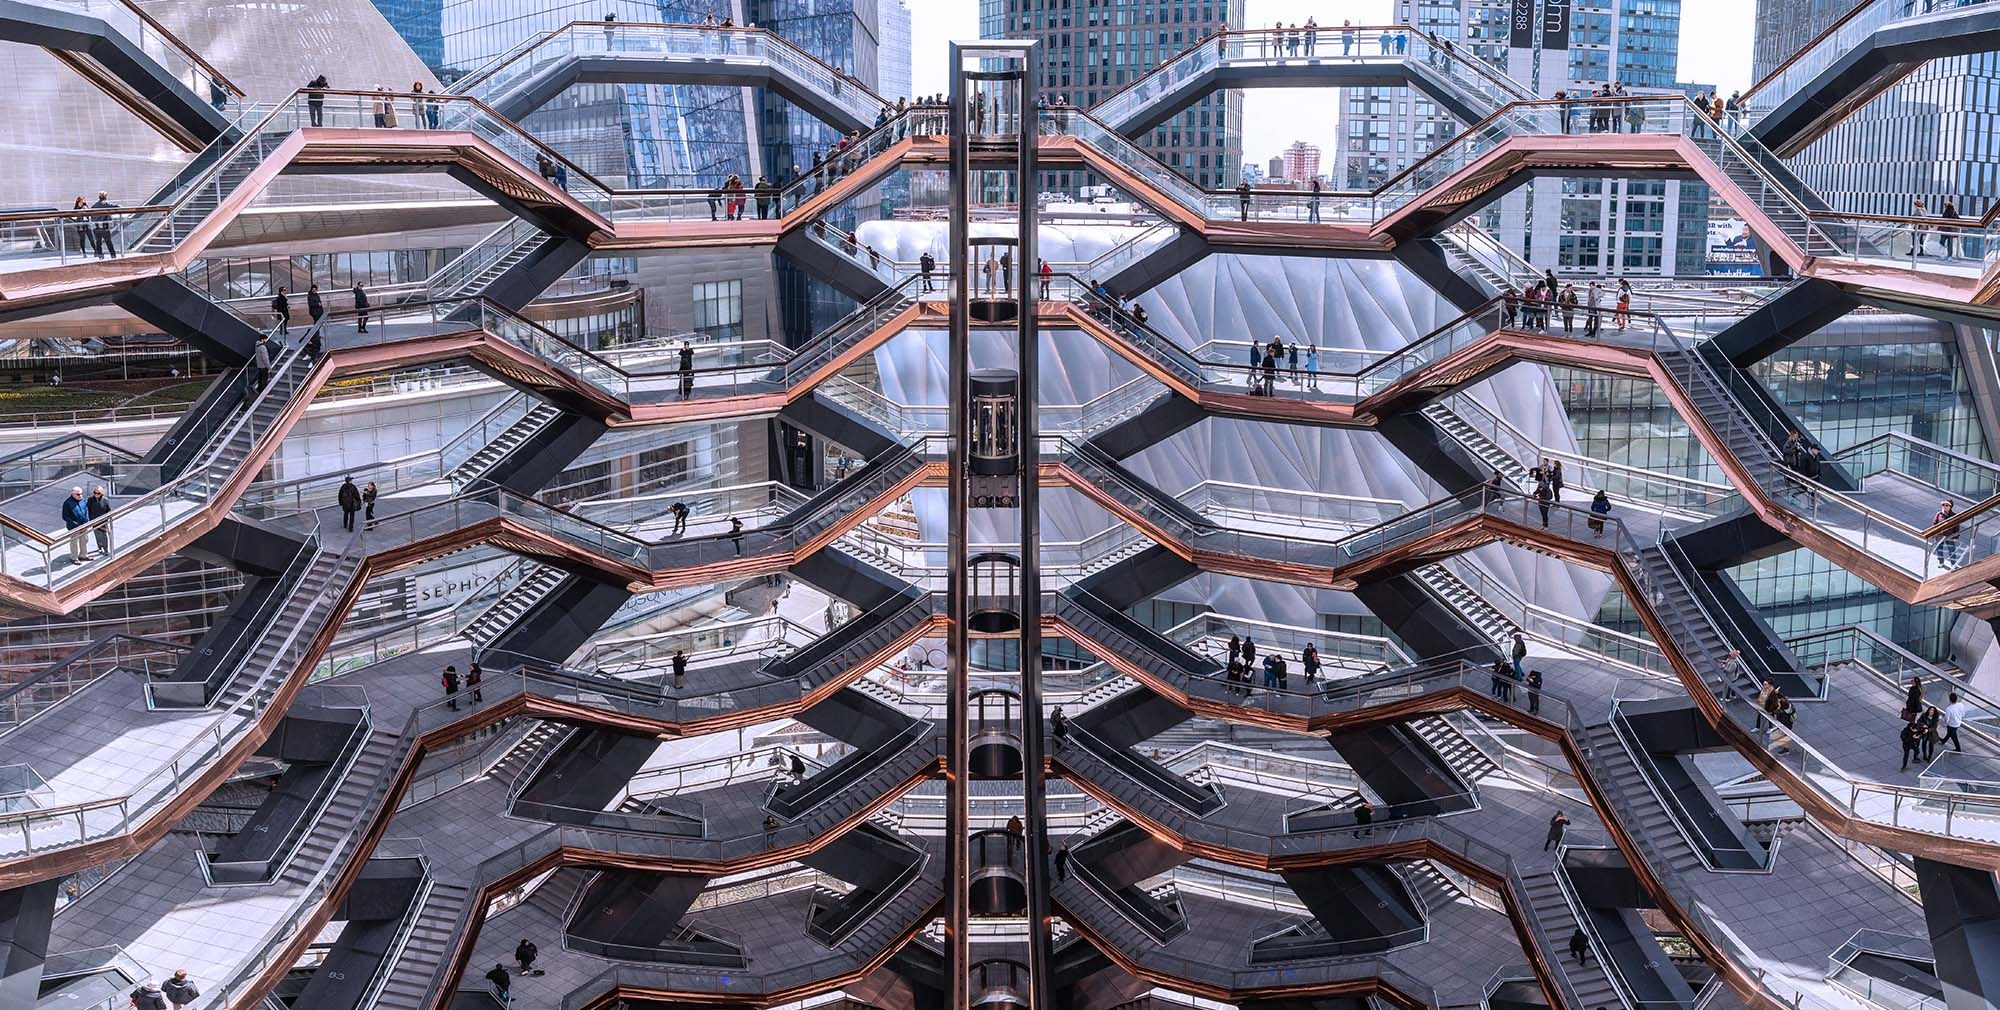 The elevator in the Vessel at Hudson Yards New York City ascends the copper clad spiraling staircases designed by Heatherwick Studios